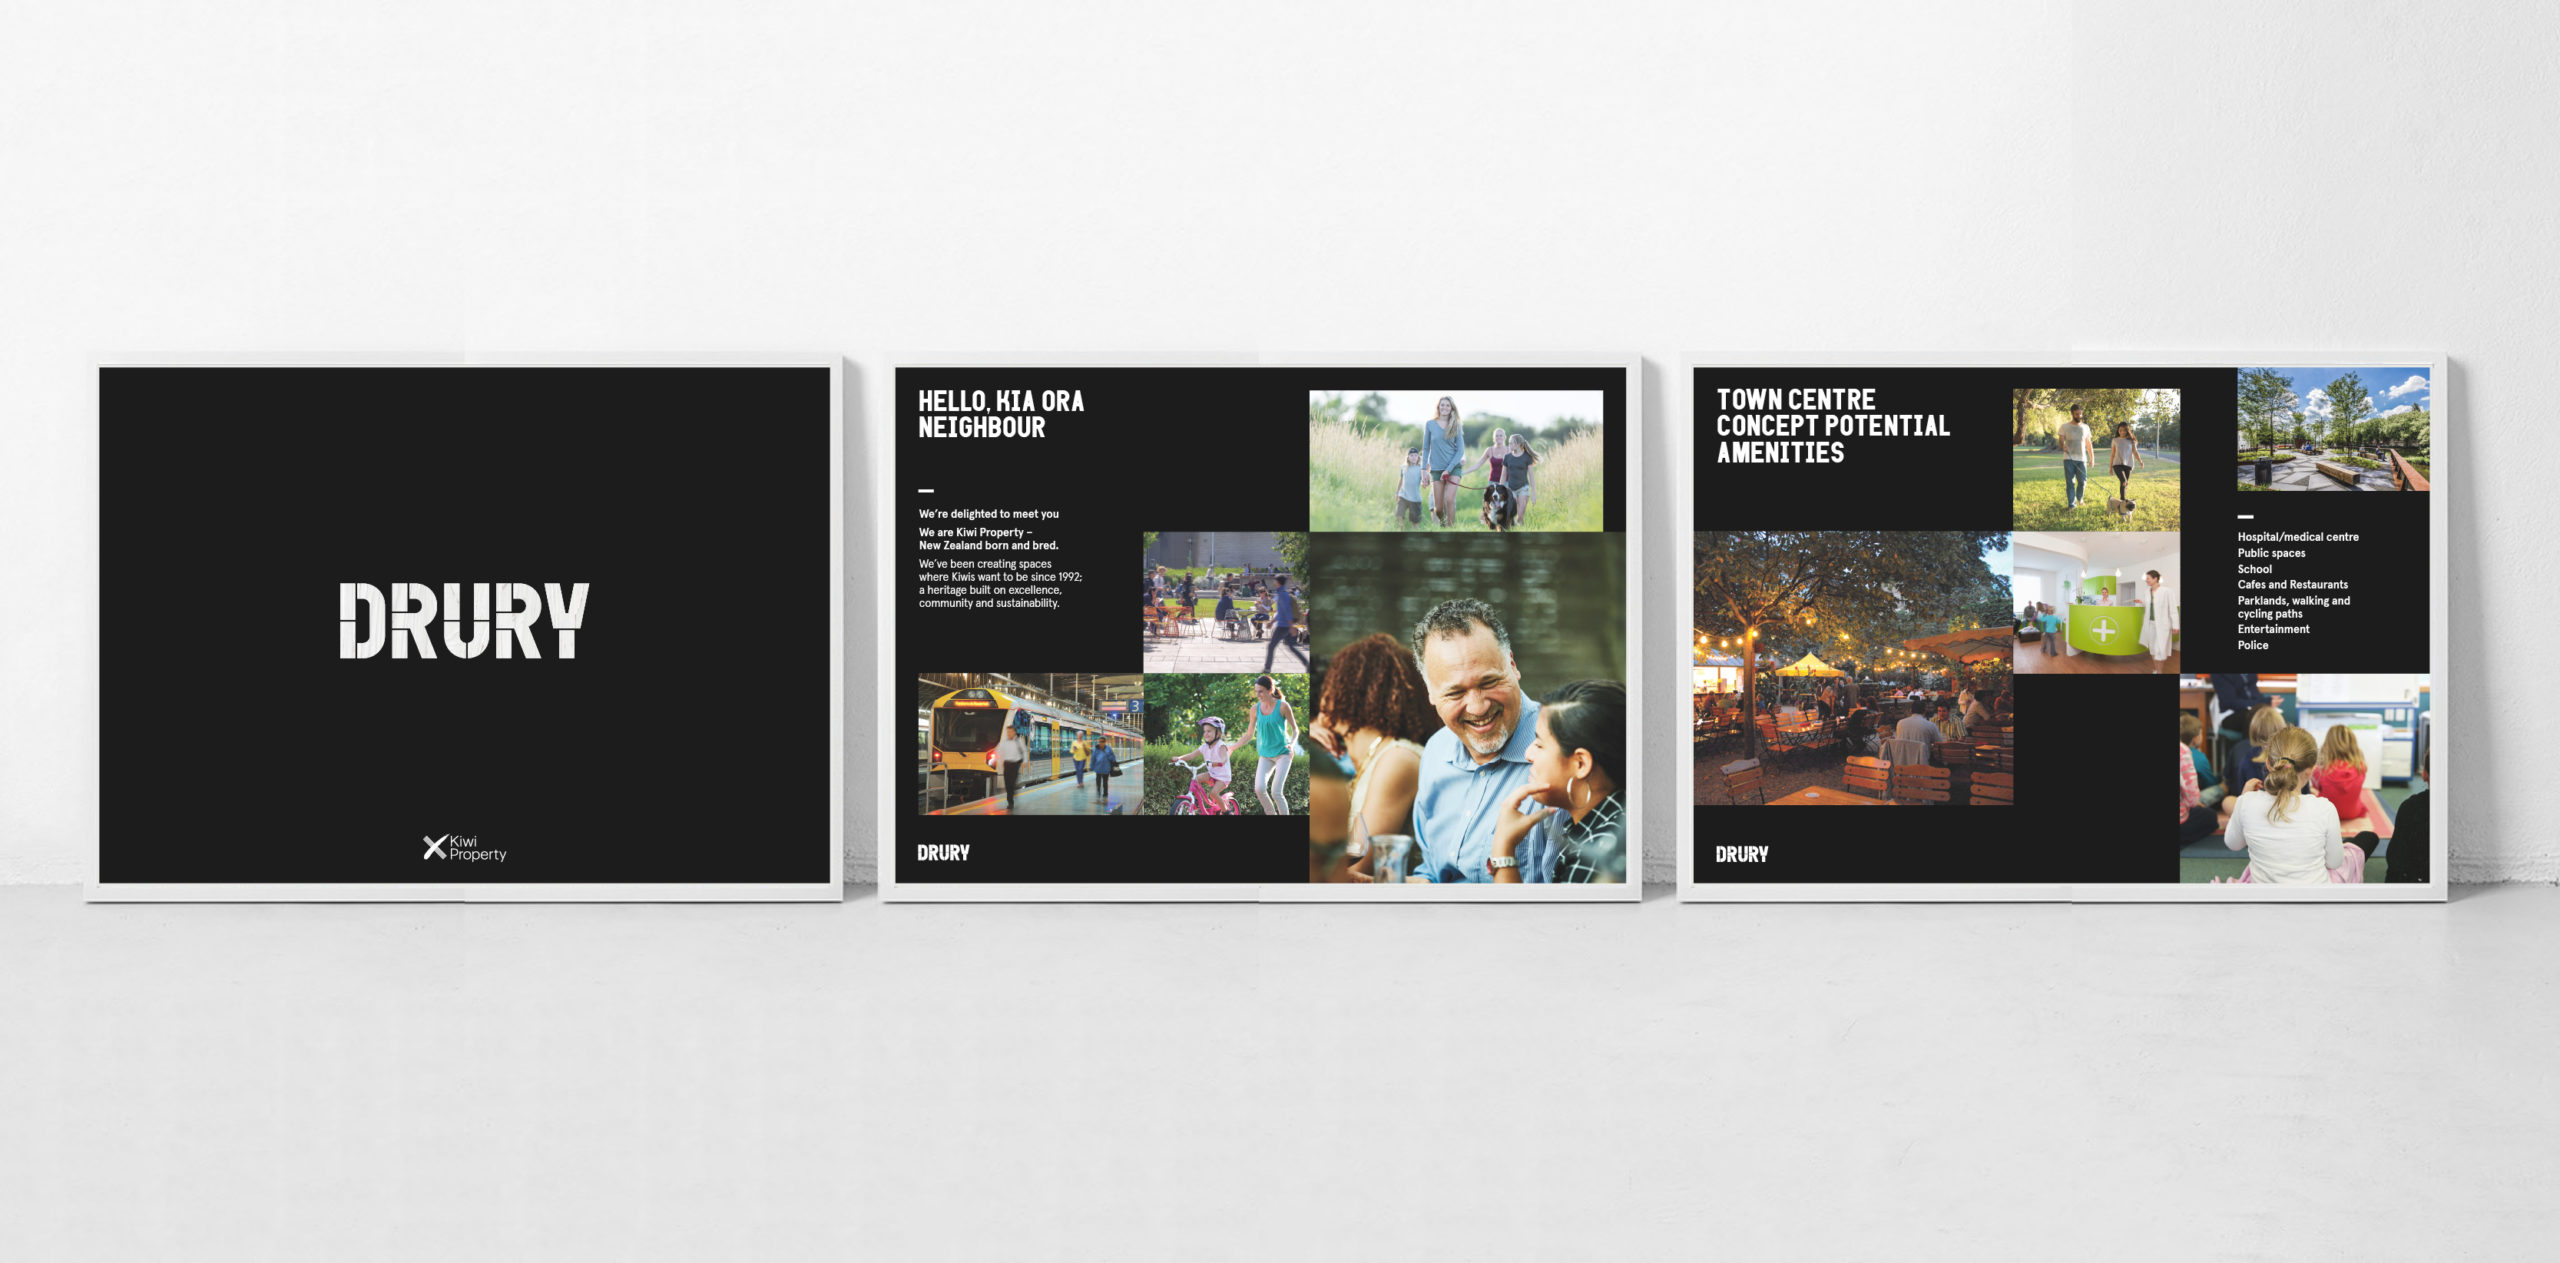 series of large scale presentation boards black backgrounds and imagery depicting future development Drury community development communications